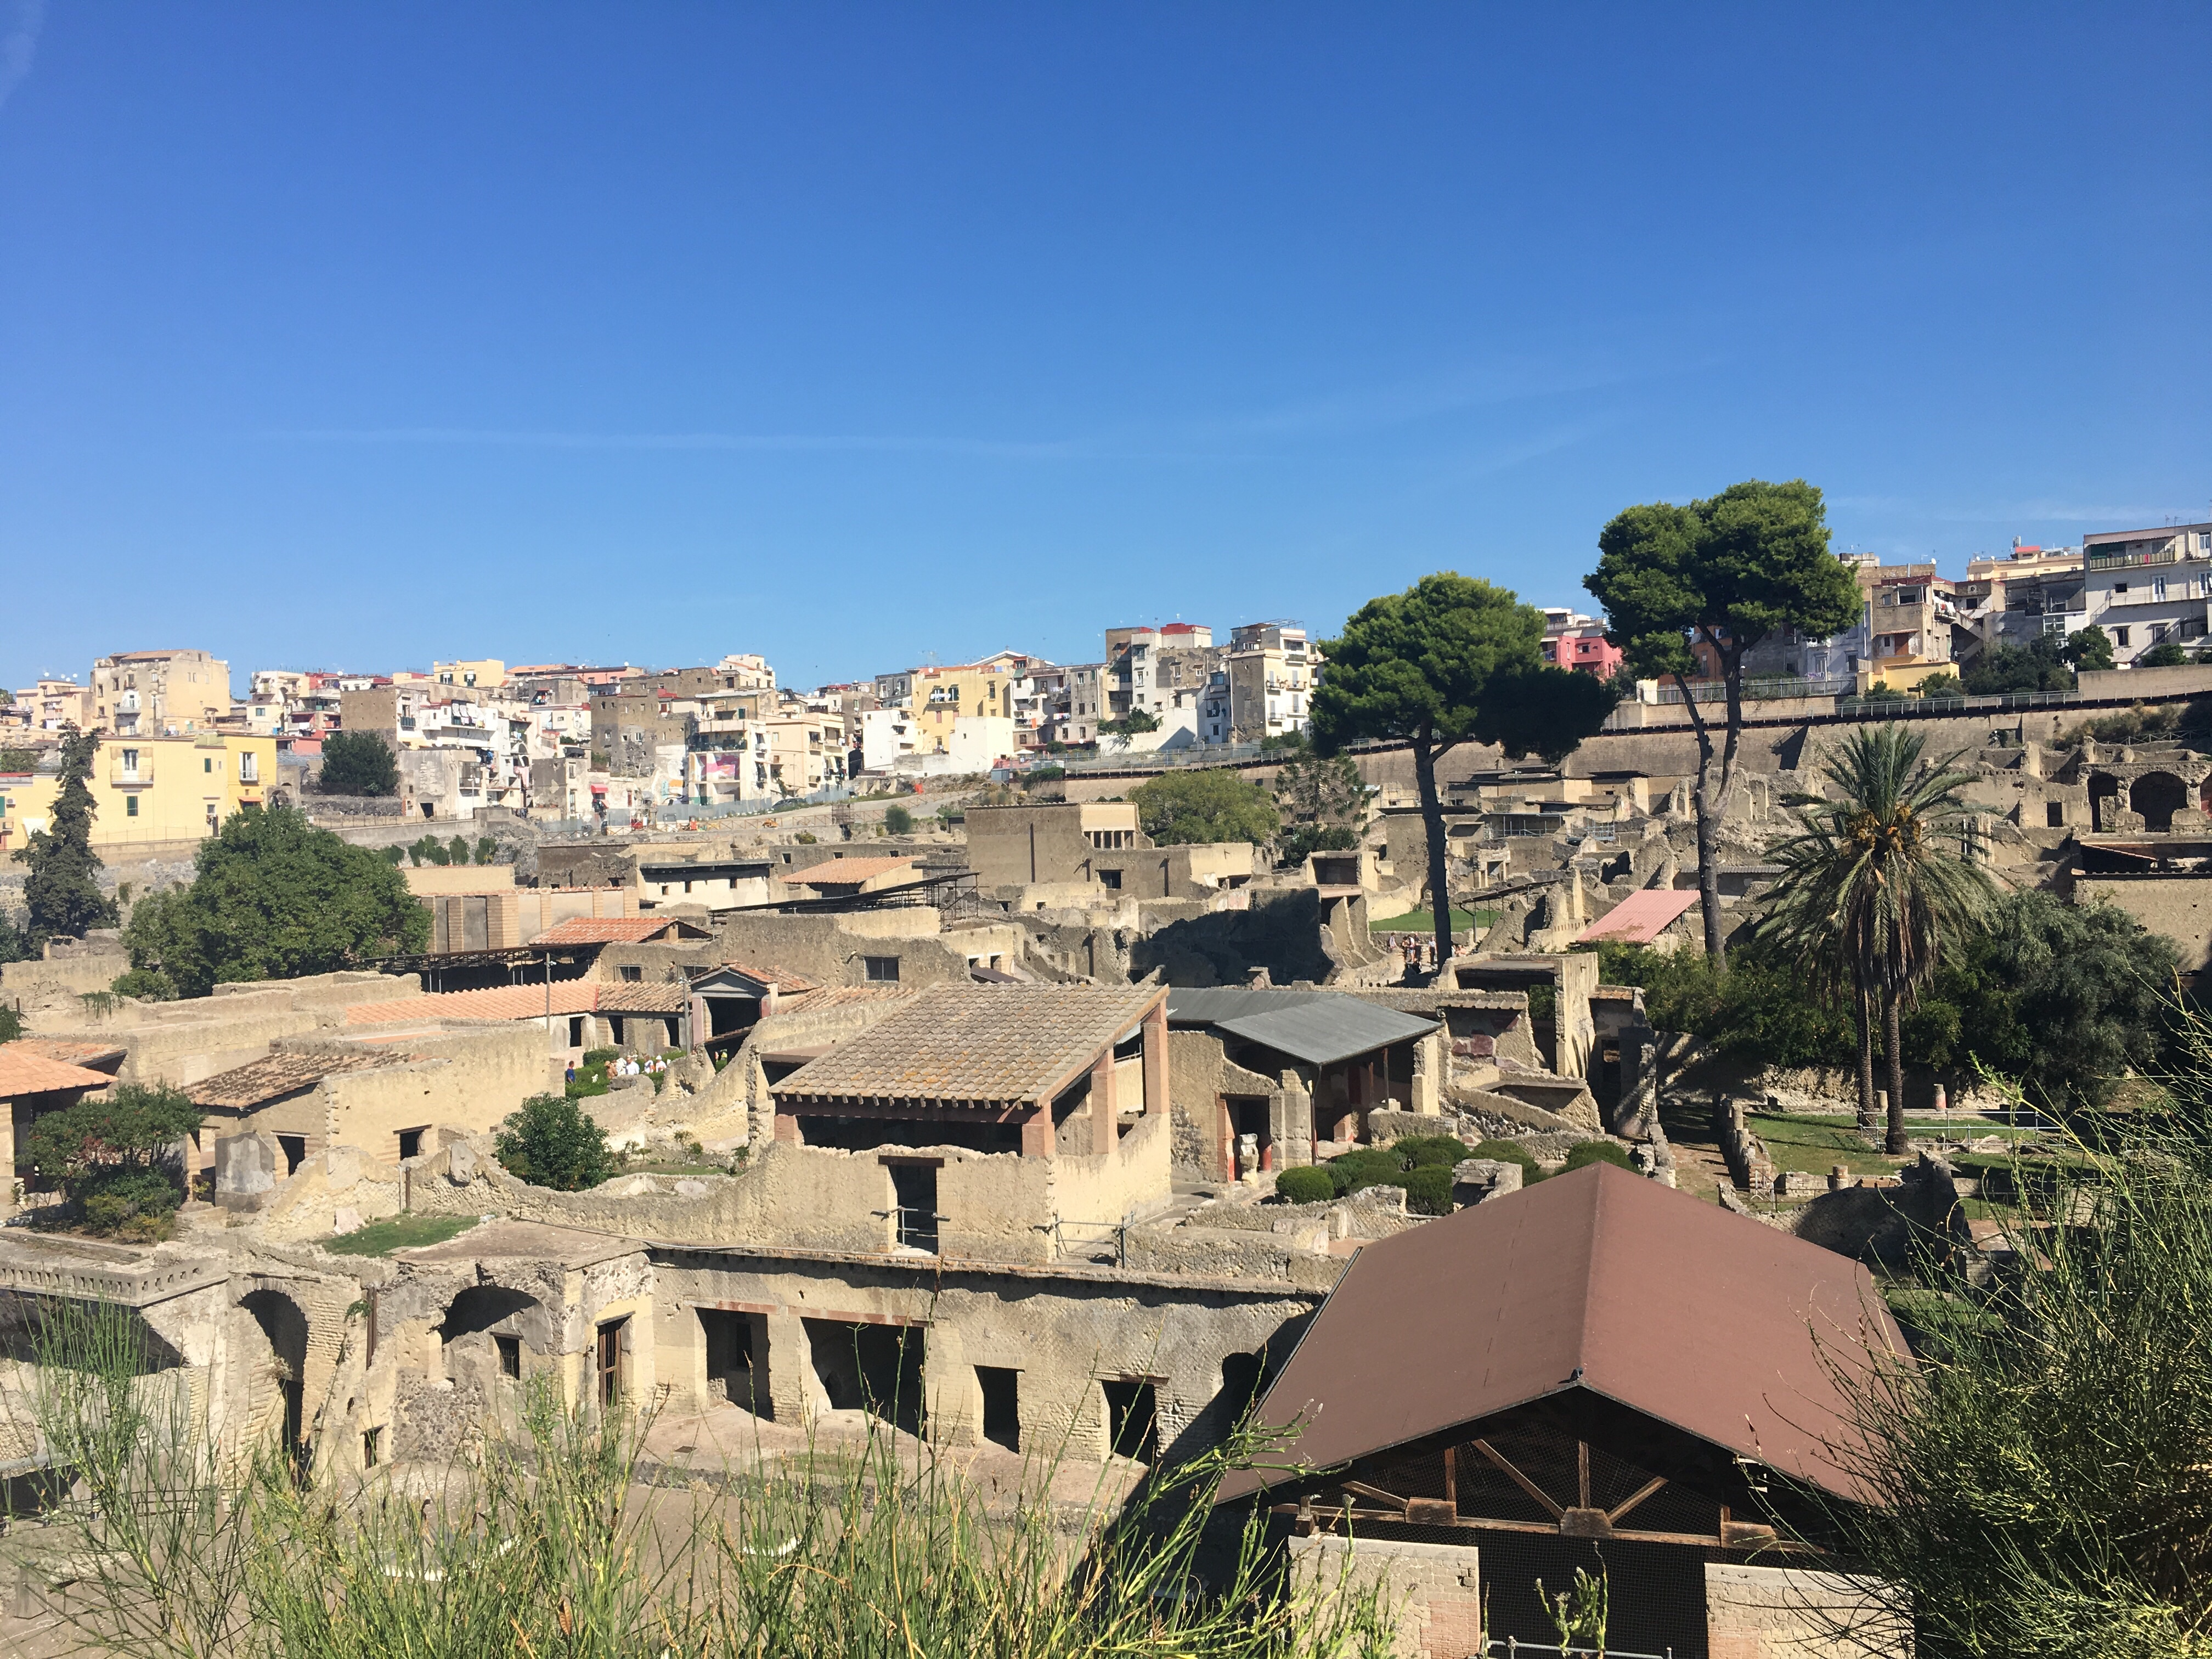 Herculaneum - perfect example of the old buildings (Roman) at the bottom of the photo with the modern town of Ercolano above.